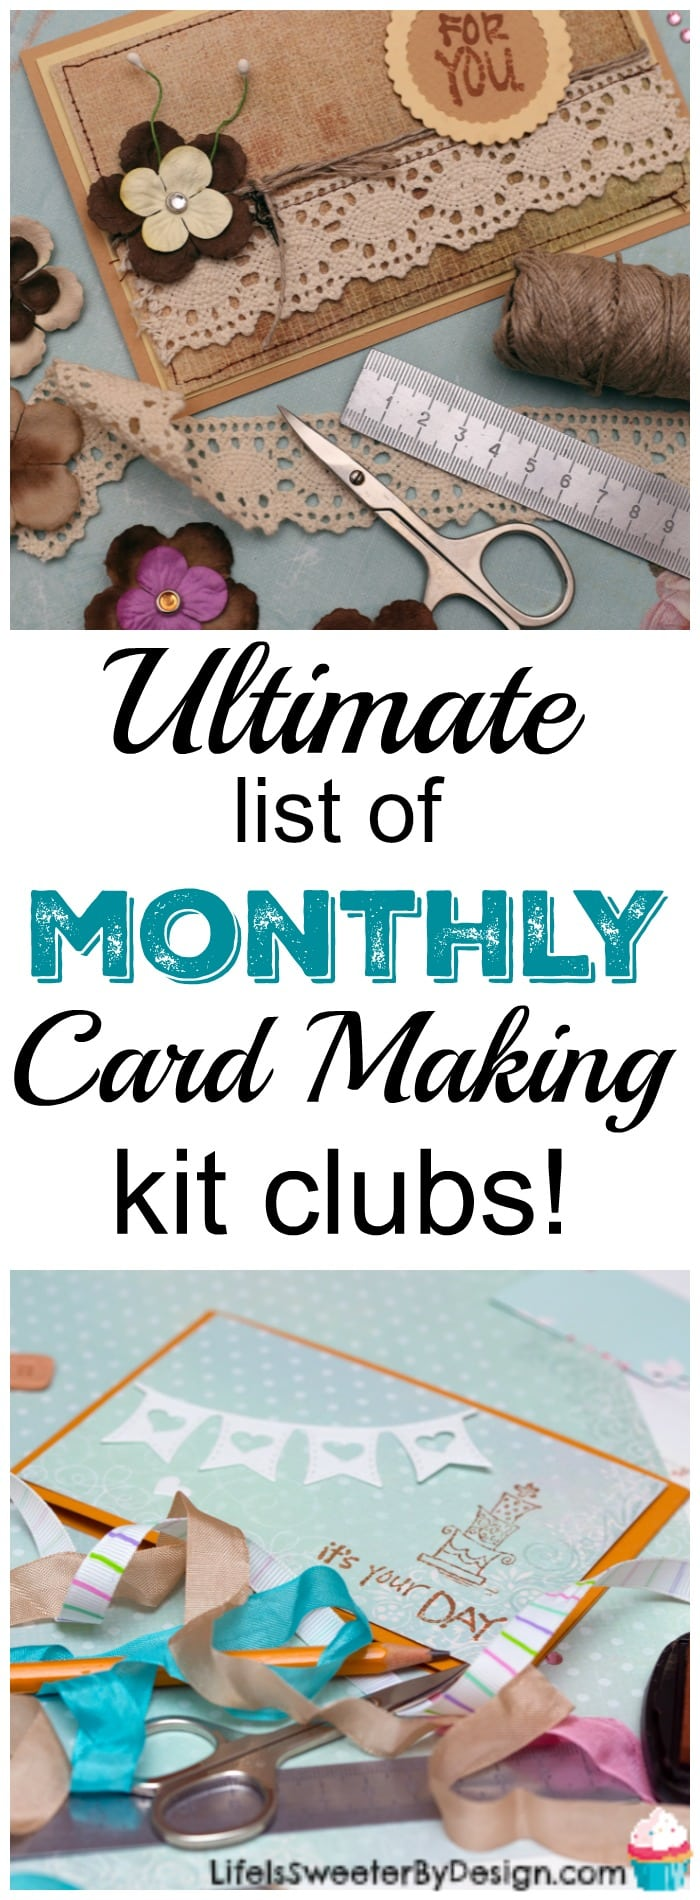 Card Crafting Kits For Kids